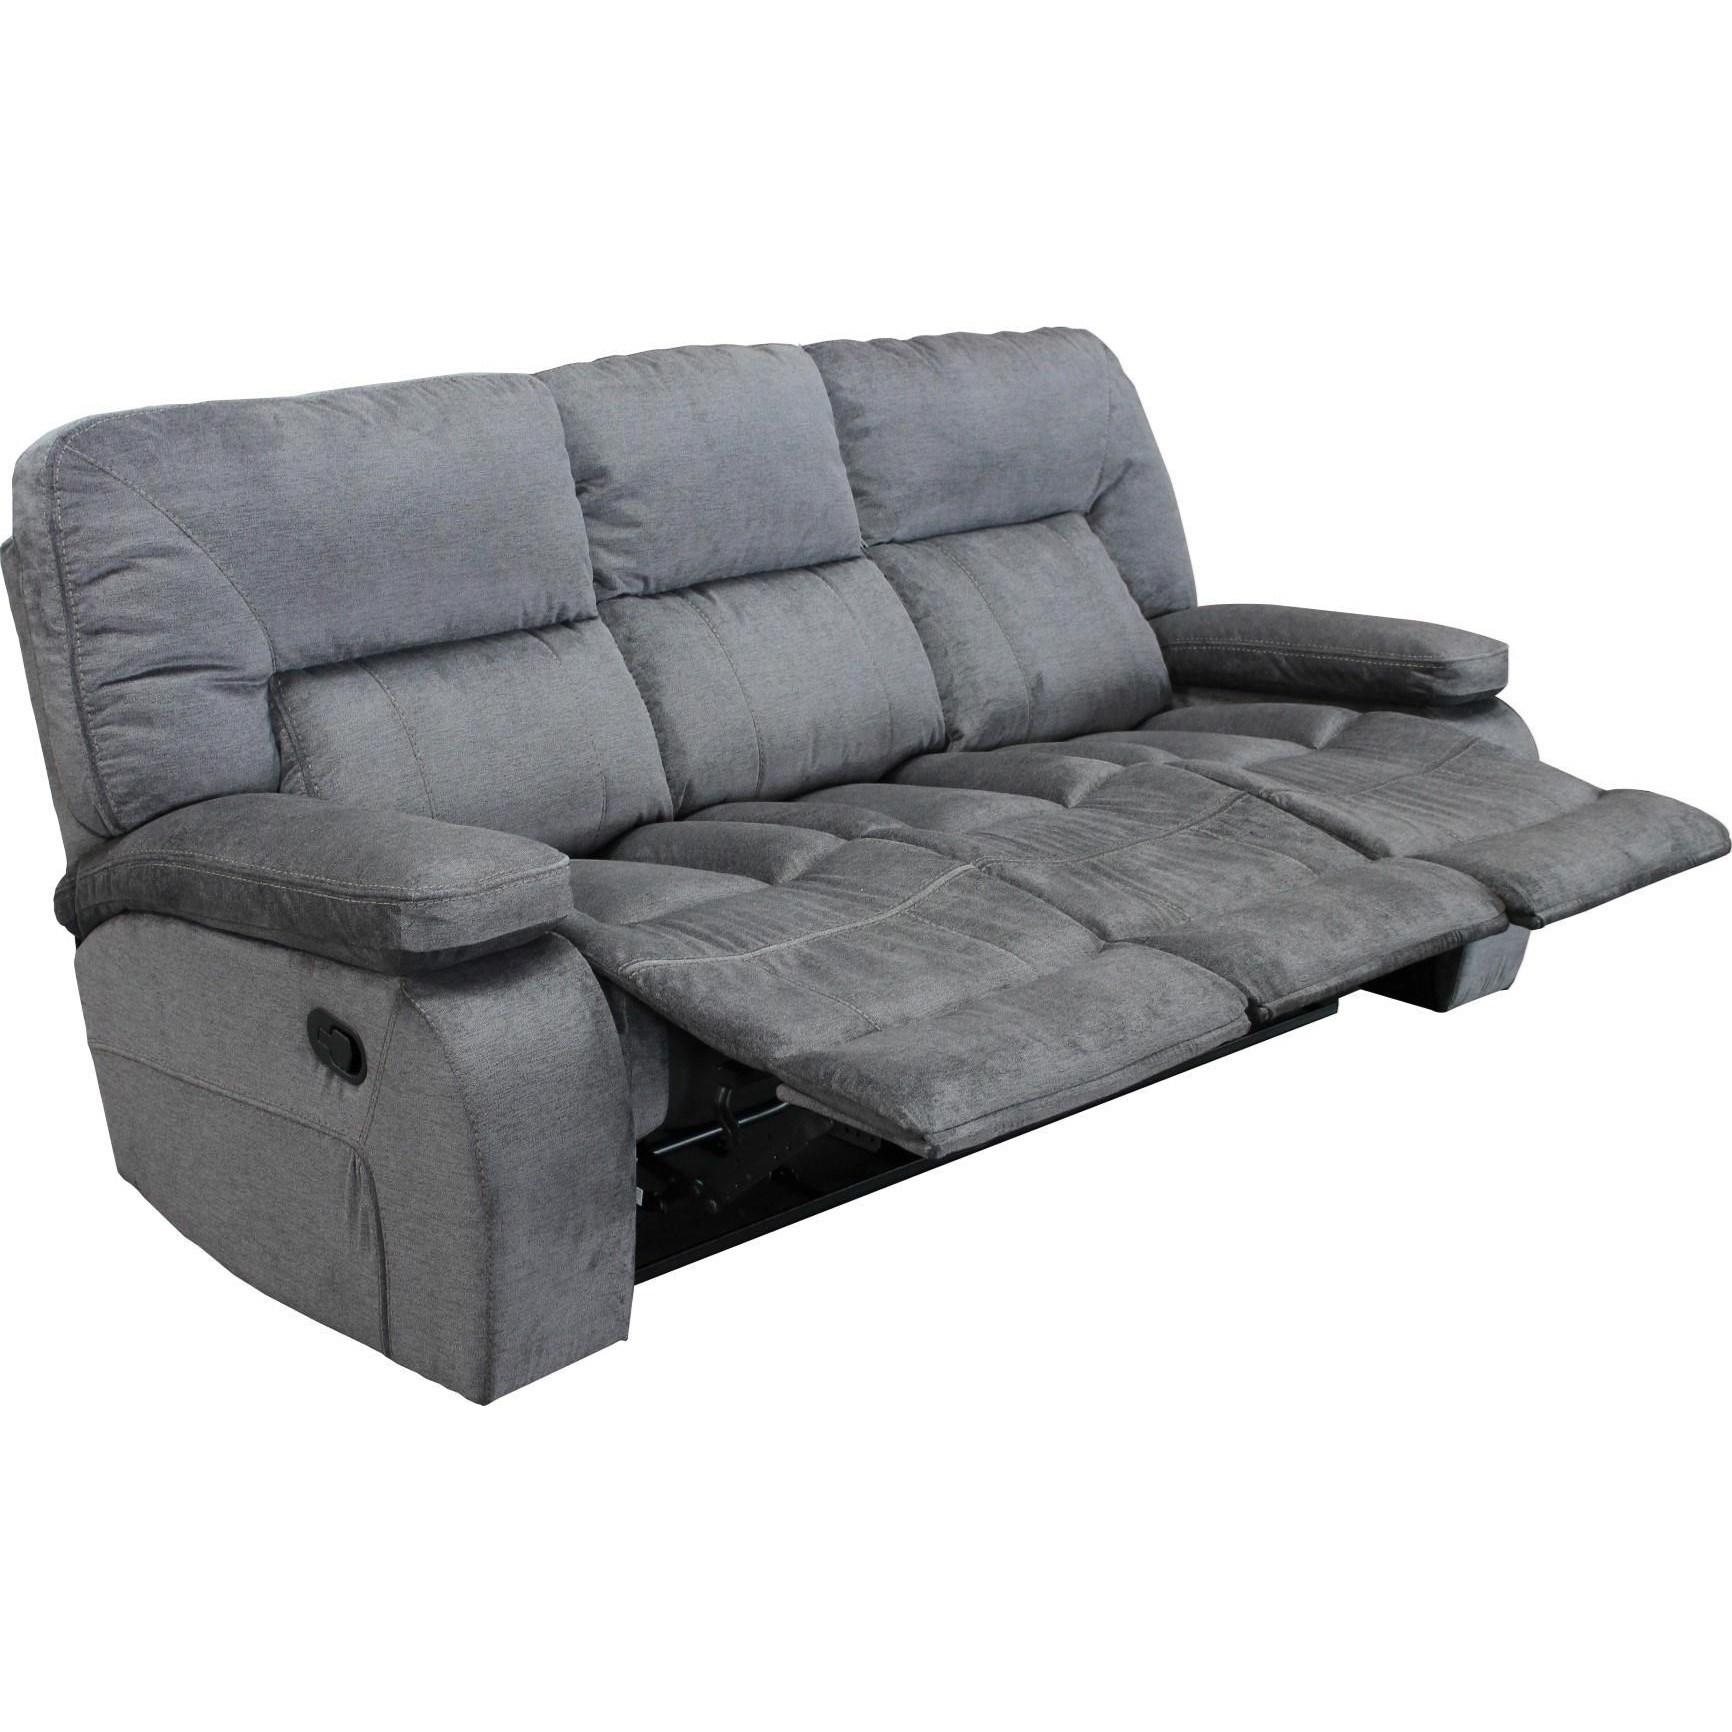 Parker Living Chapman Triple Reclining Sofa - Item Number: MCHA-833-POL